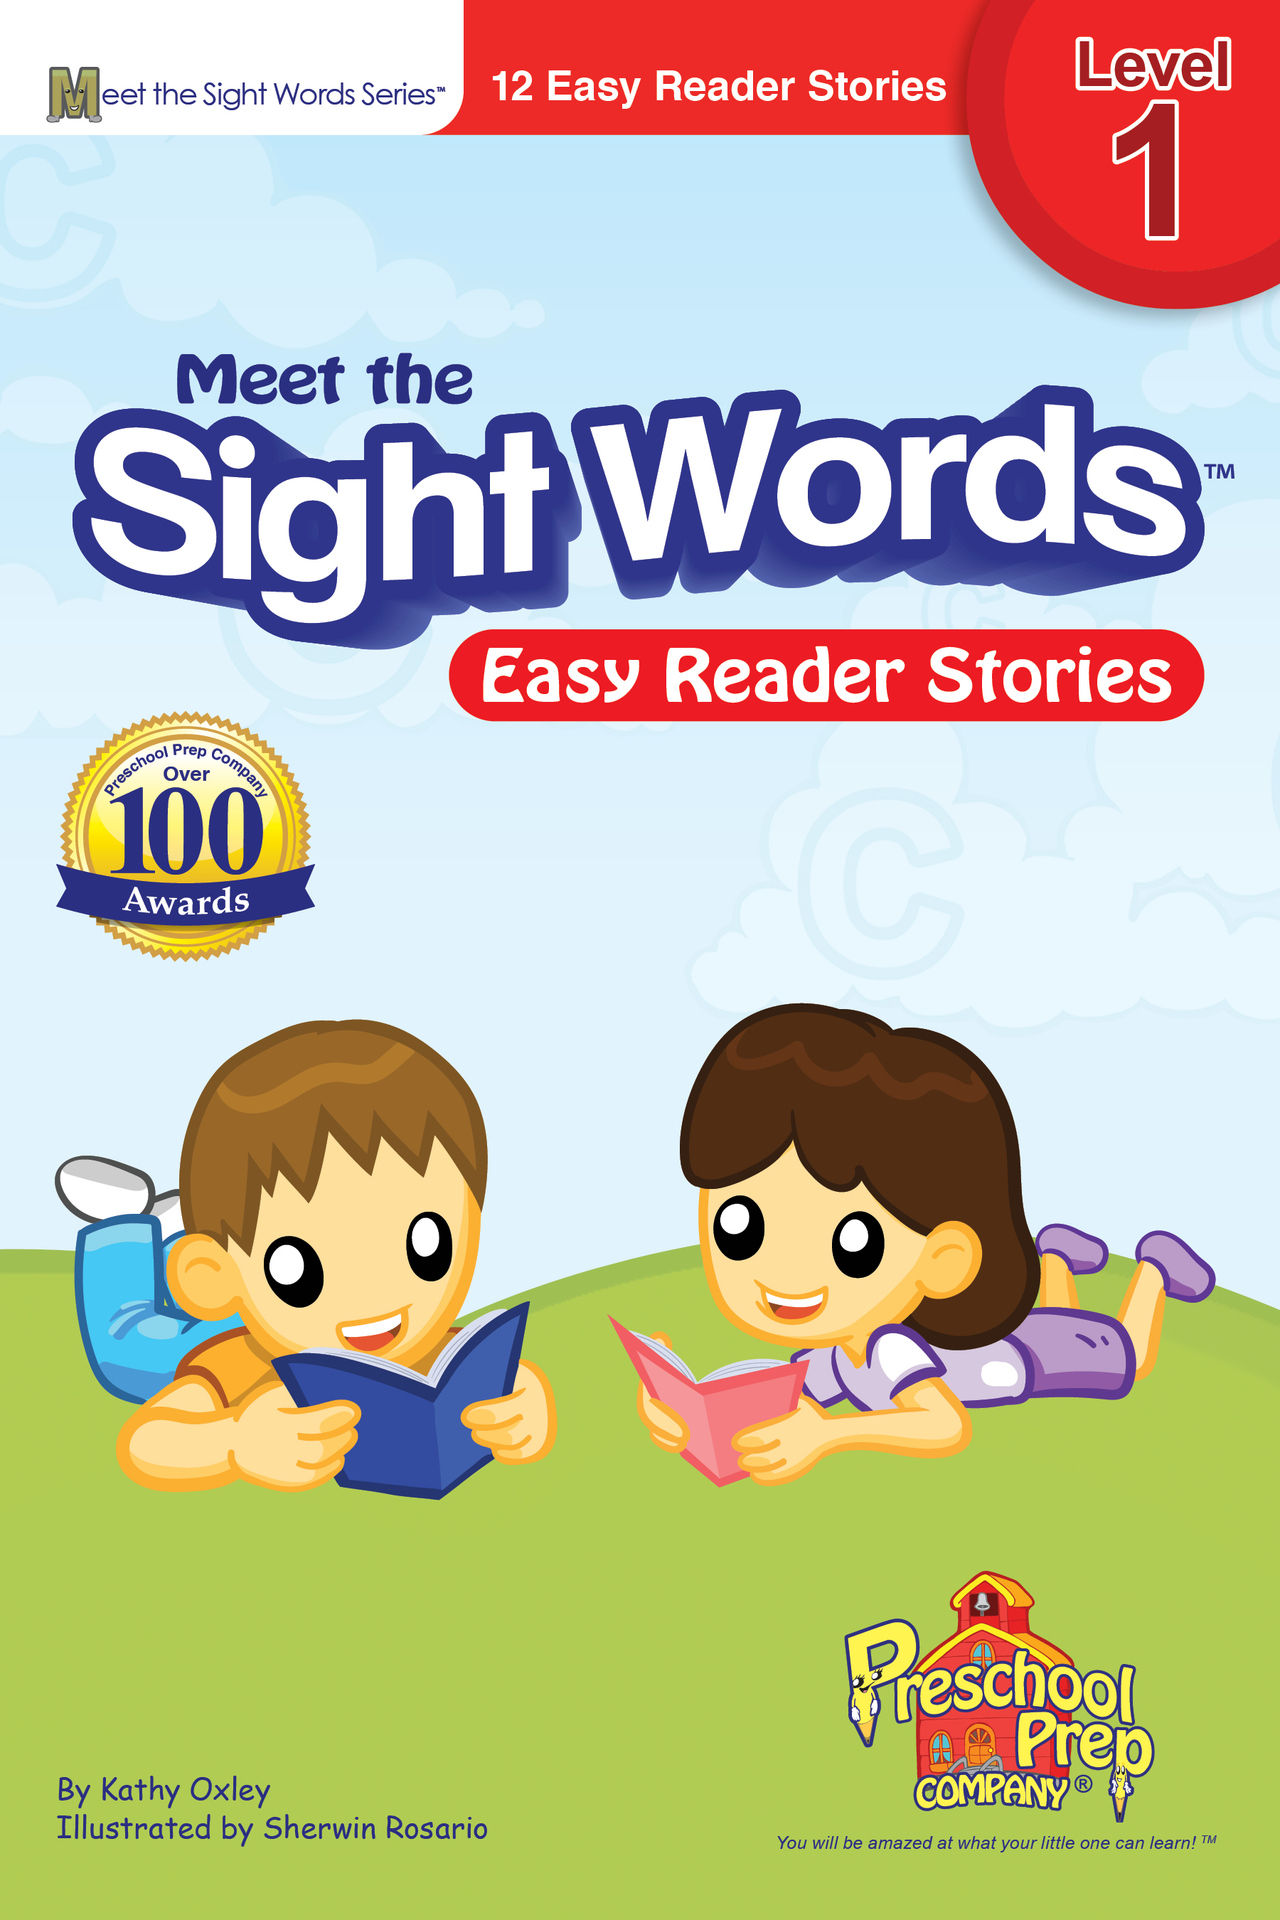 Meet The Sight Words Level -1 book for sight words